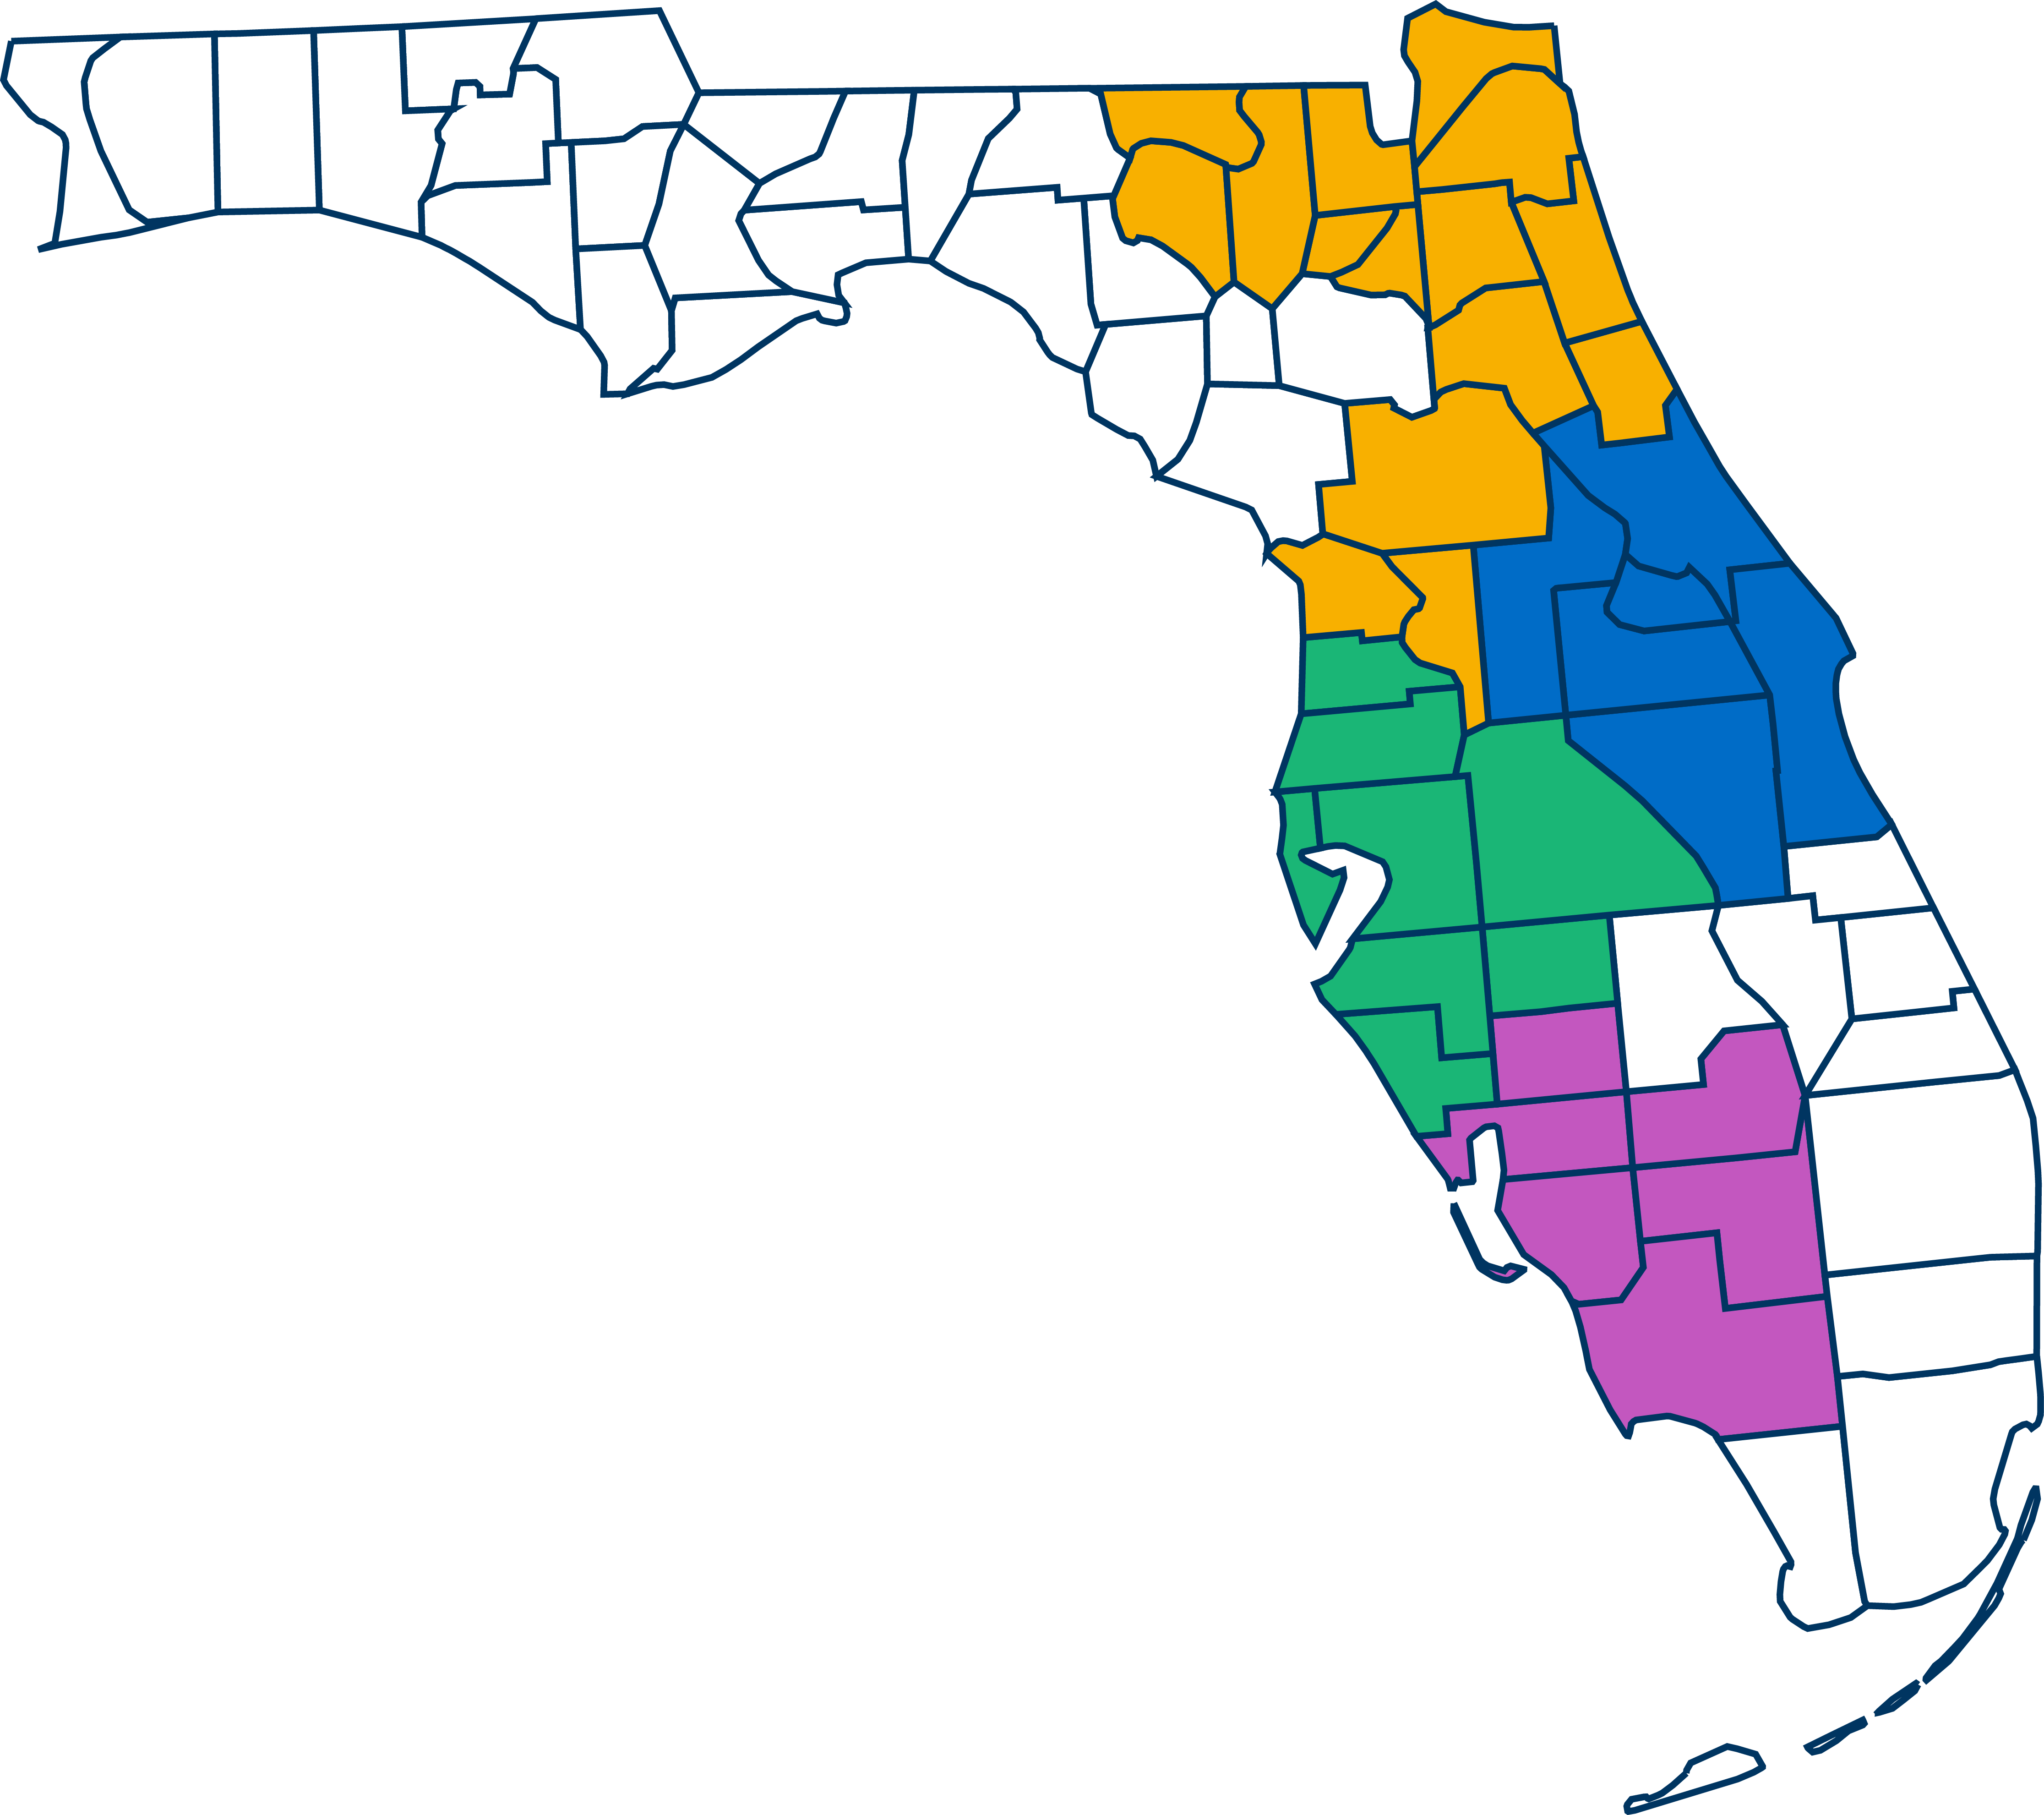 Florida Middle Districts